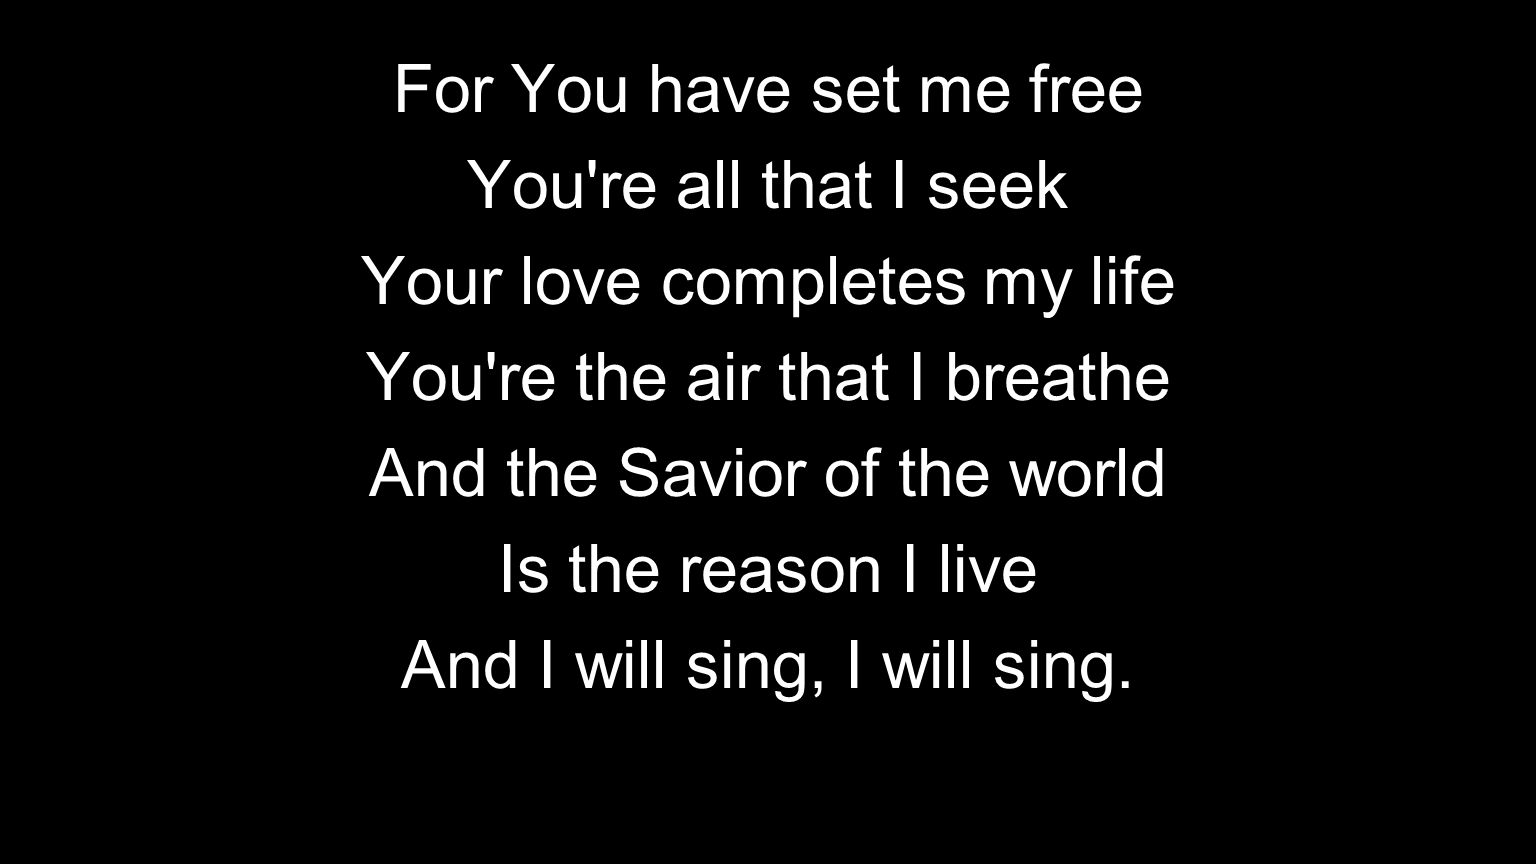 For You have set me free You're all that I seek Your love completes my life You're the air that I breathe And the Savior of the world Is the reason I